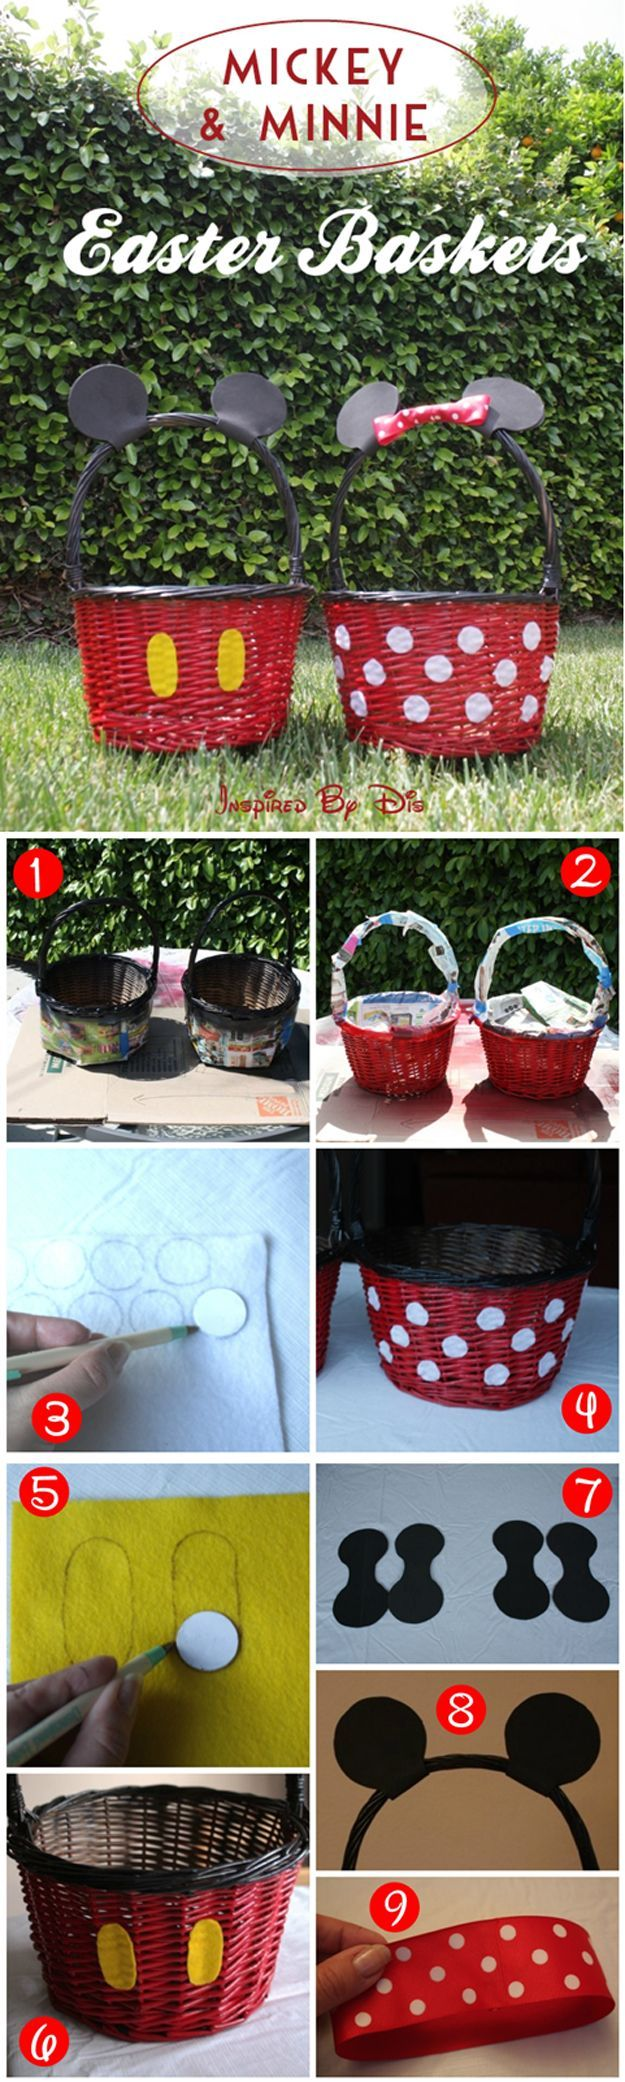 Best 25 easter baskets ideas on pinterest easter easter 15 diy easter basket ideas that will have you hoppin negle Choice Image